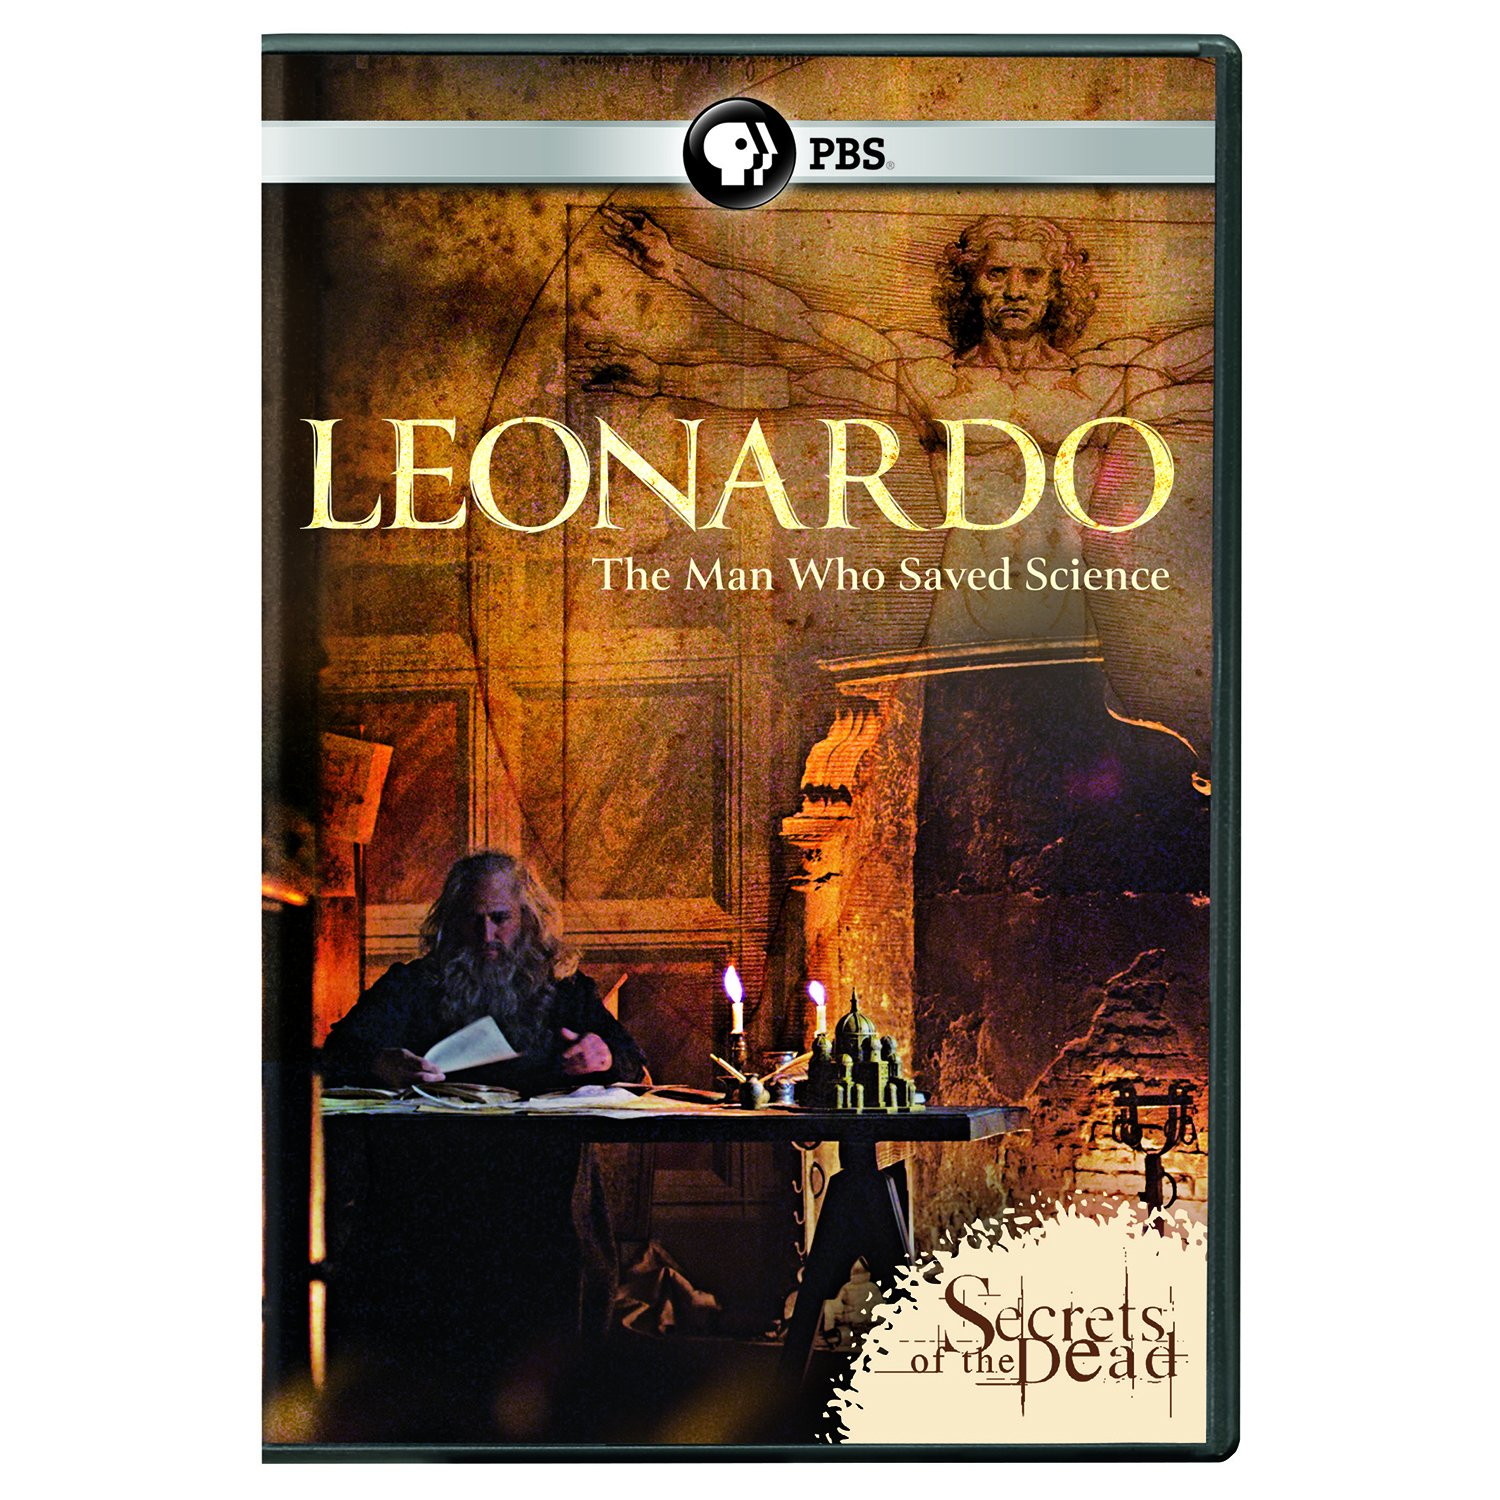 DVD : Secrets of the Dead: Leonardo - The Man Who Saved Science (Widescreen, NTSC Format)